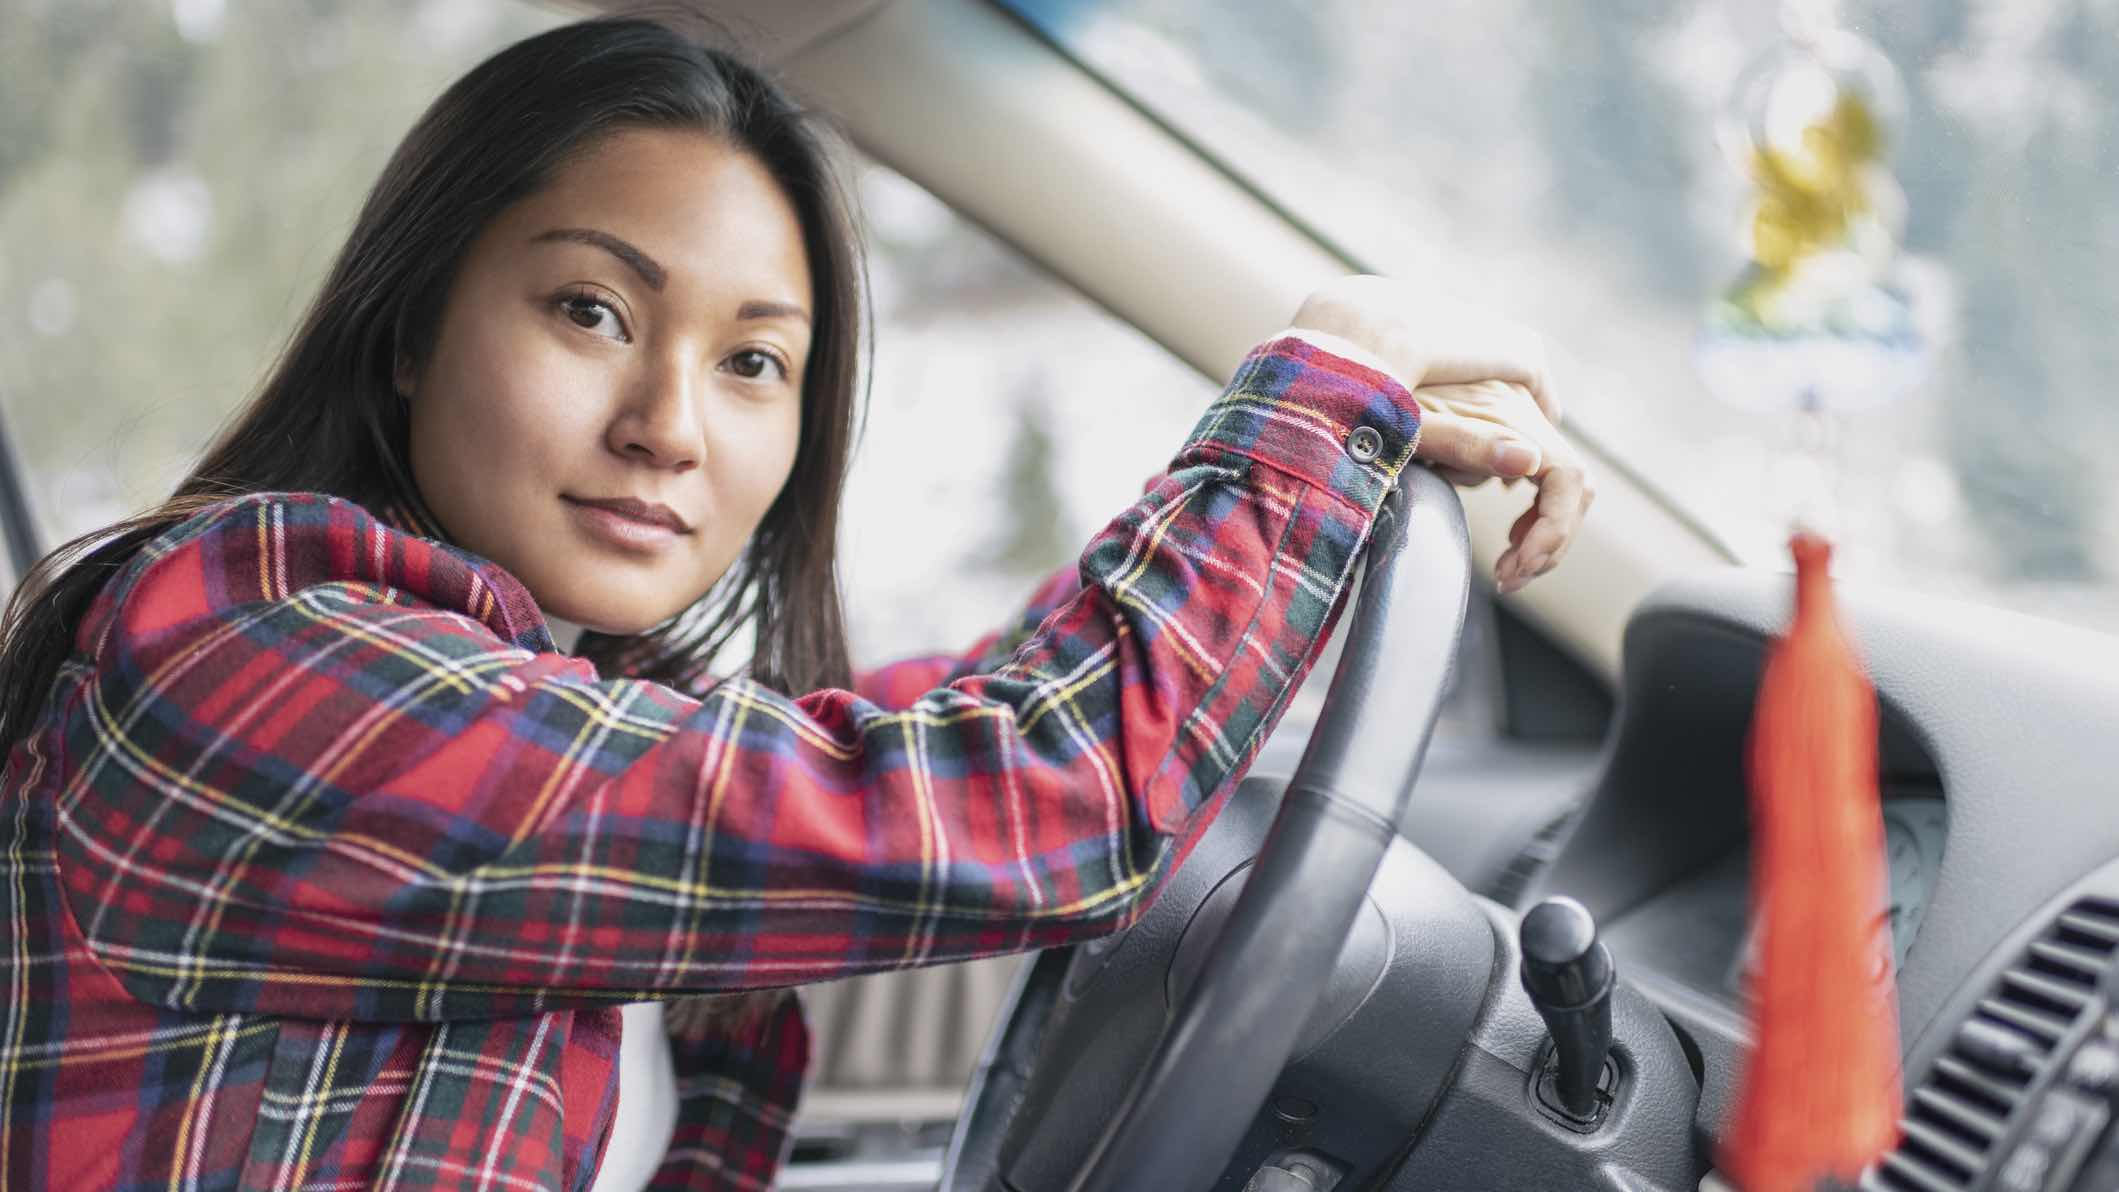 Young person driving a car, considering rental car insurance costs.